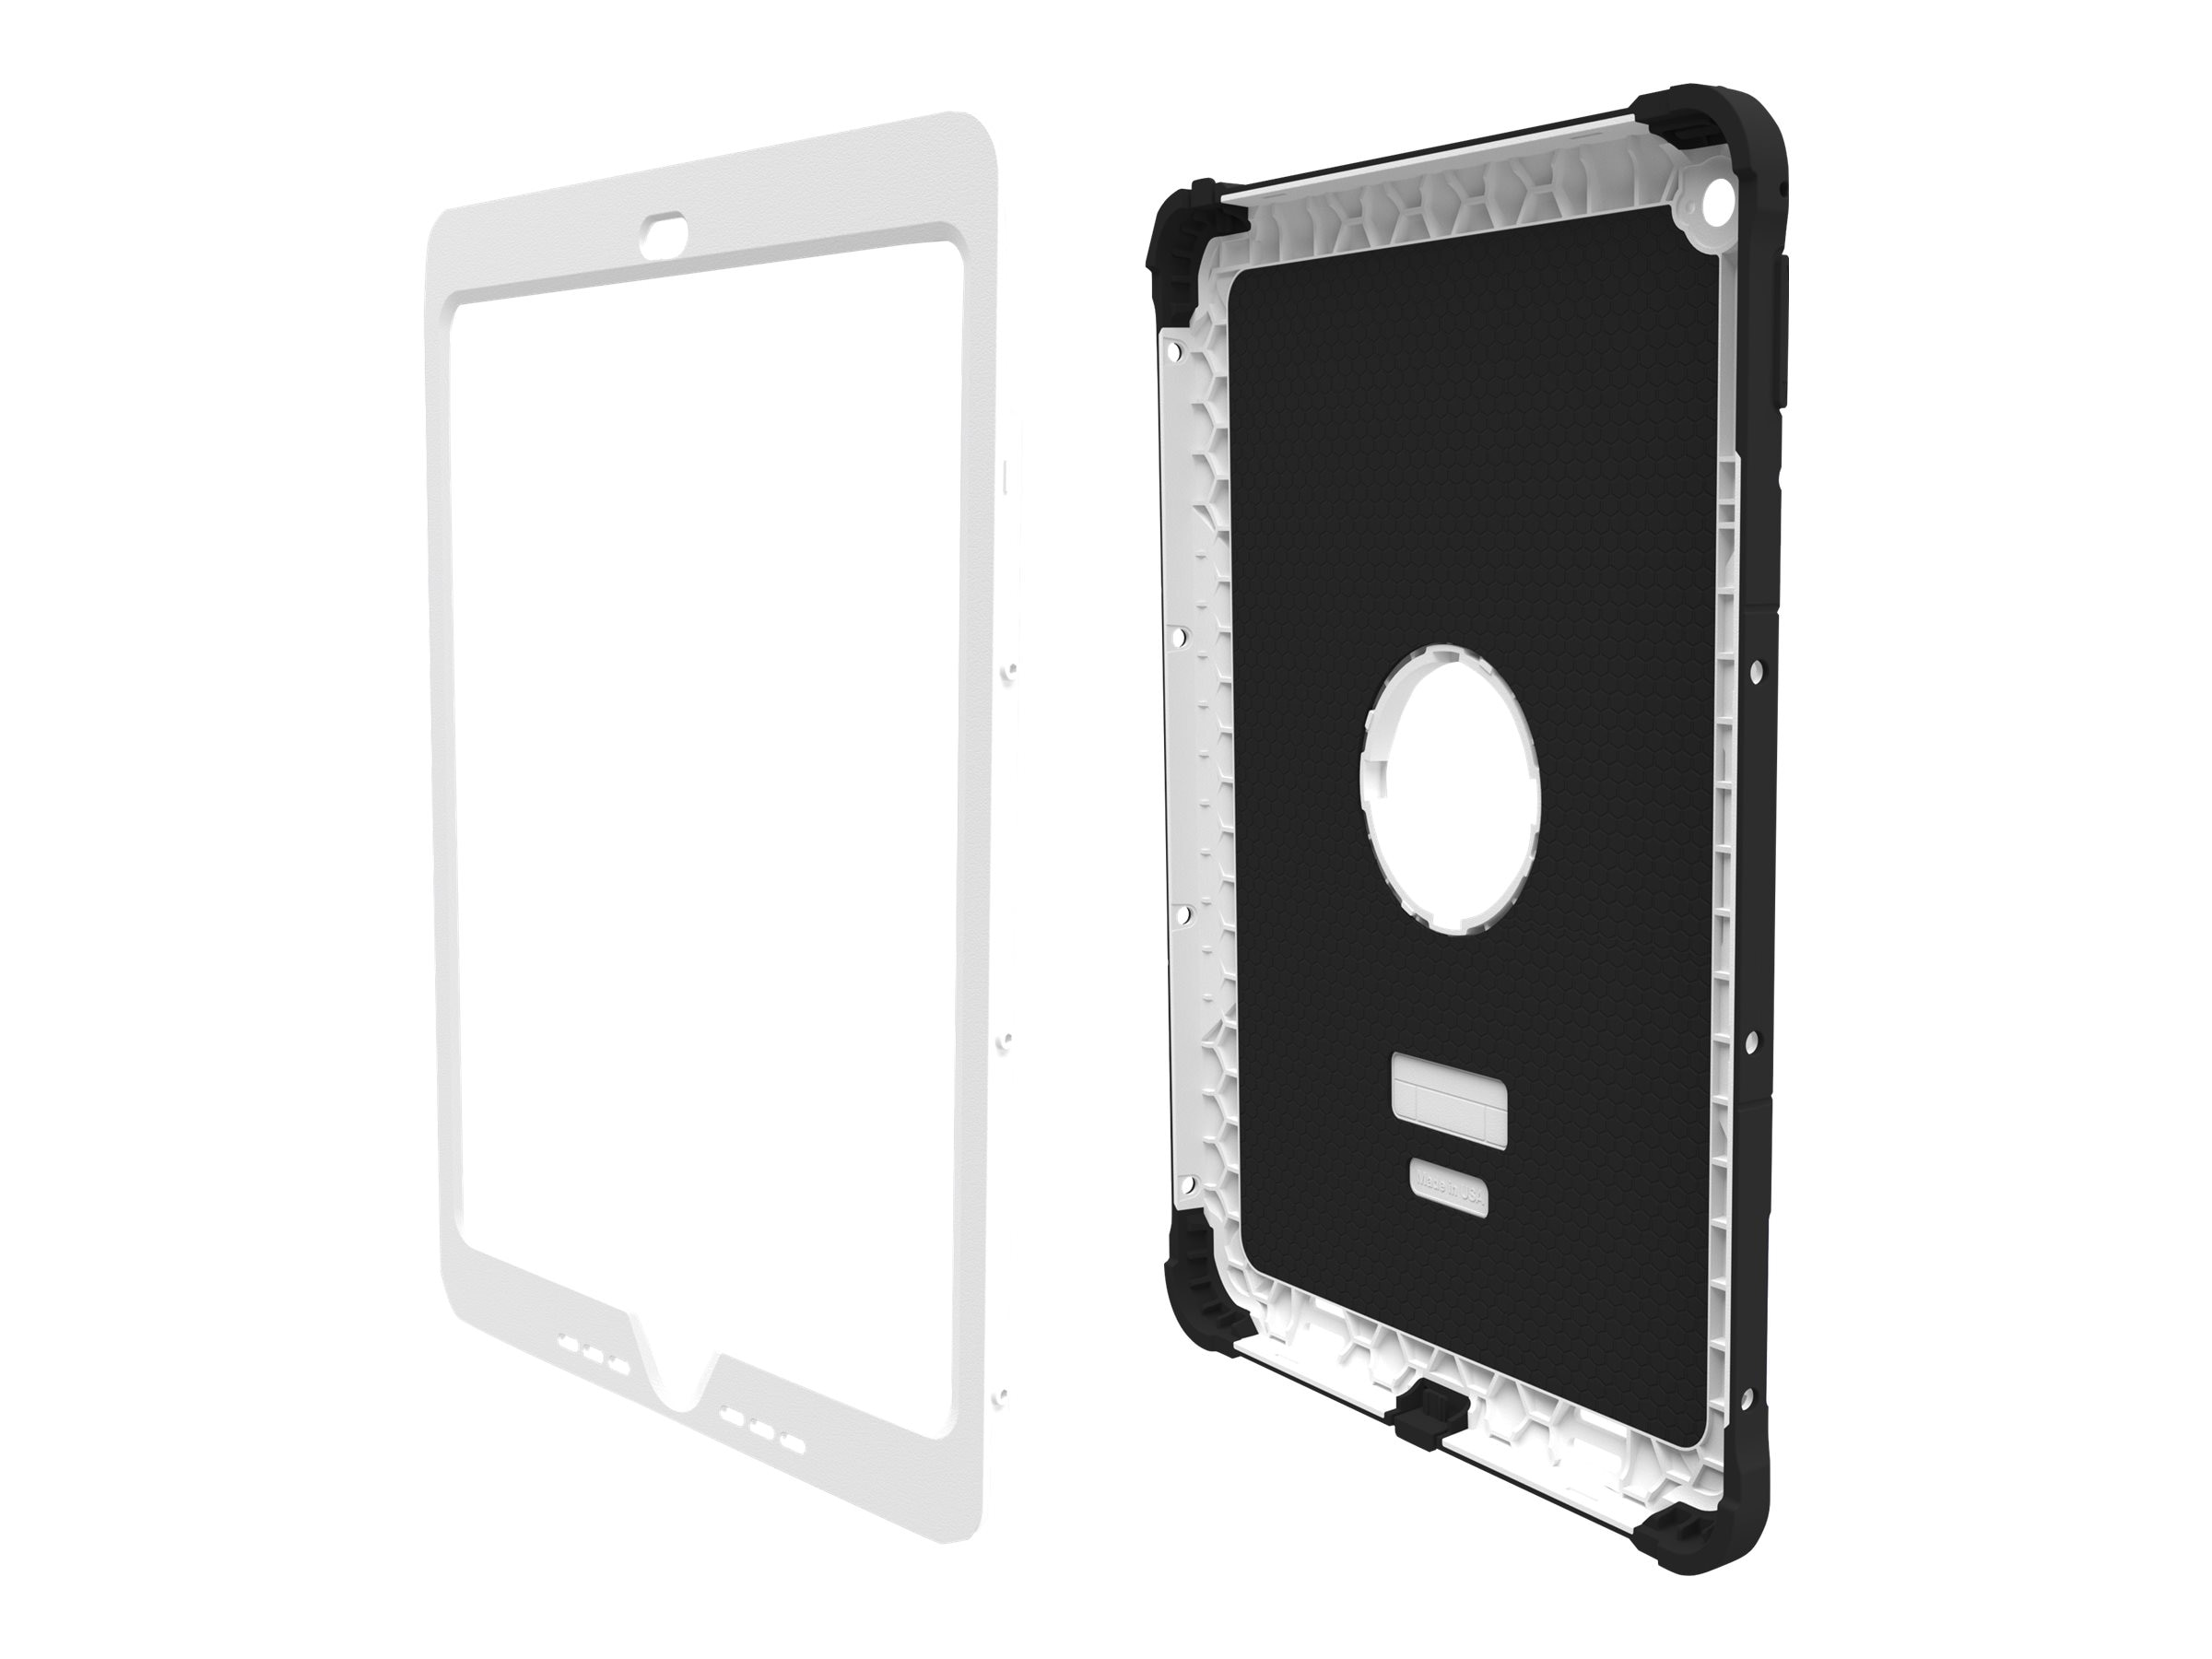 Trident Case Antimicrobial Product Protection for Apple iPad Air 2